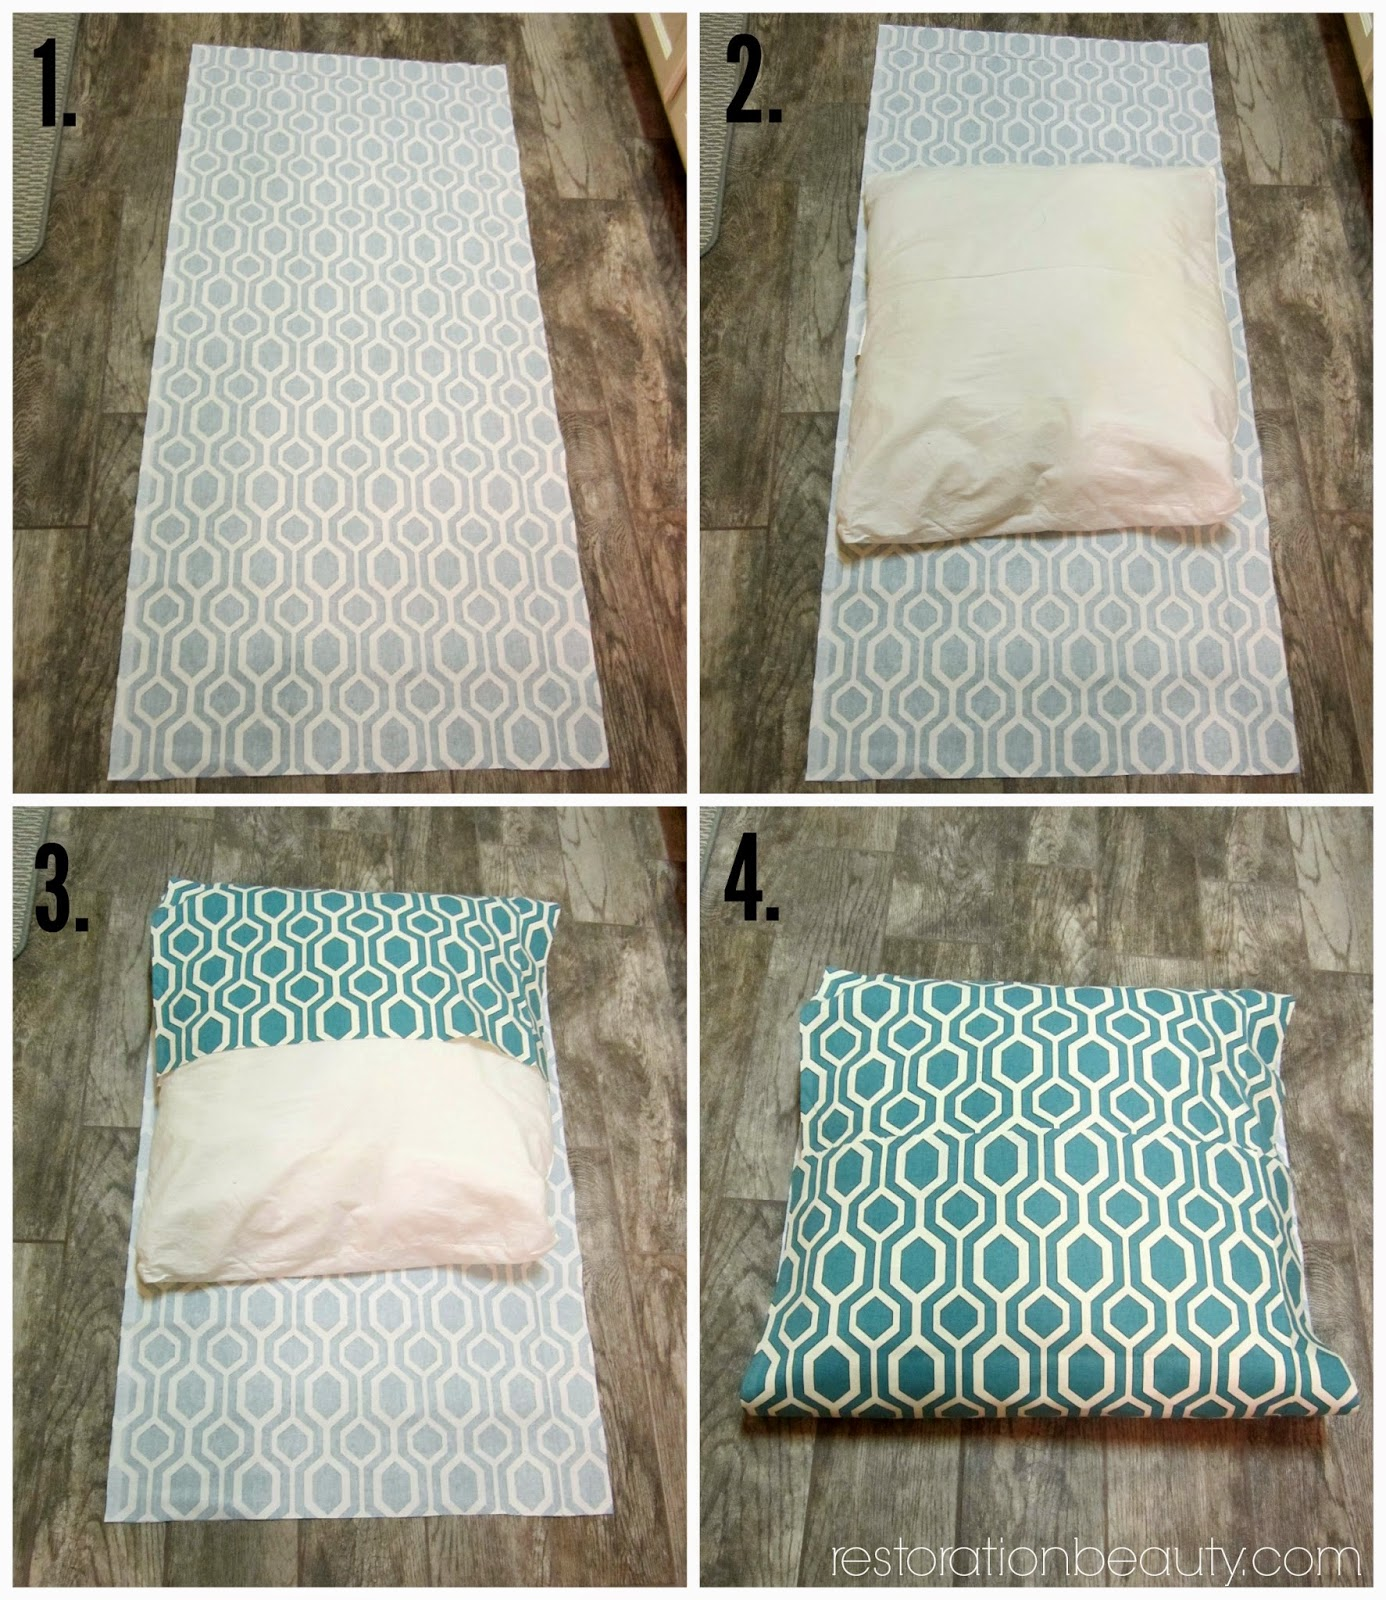 Easy To Make Floor Pillows : Restoration Beauty: Easier Than Ever No-Sew Floor Pillows